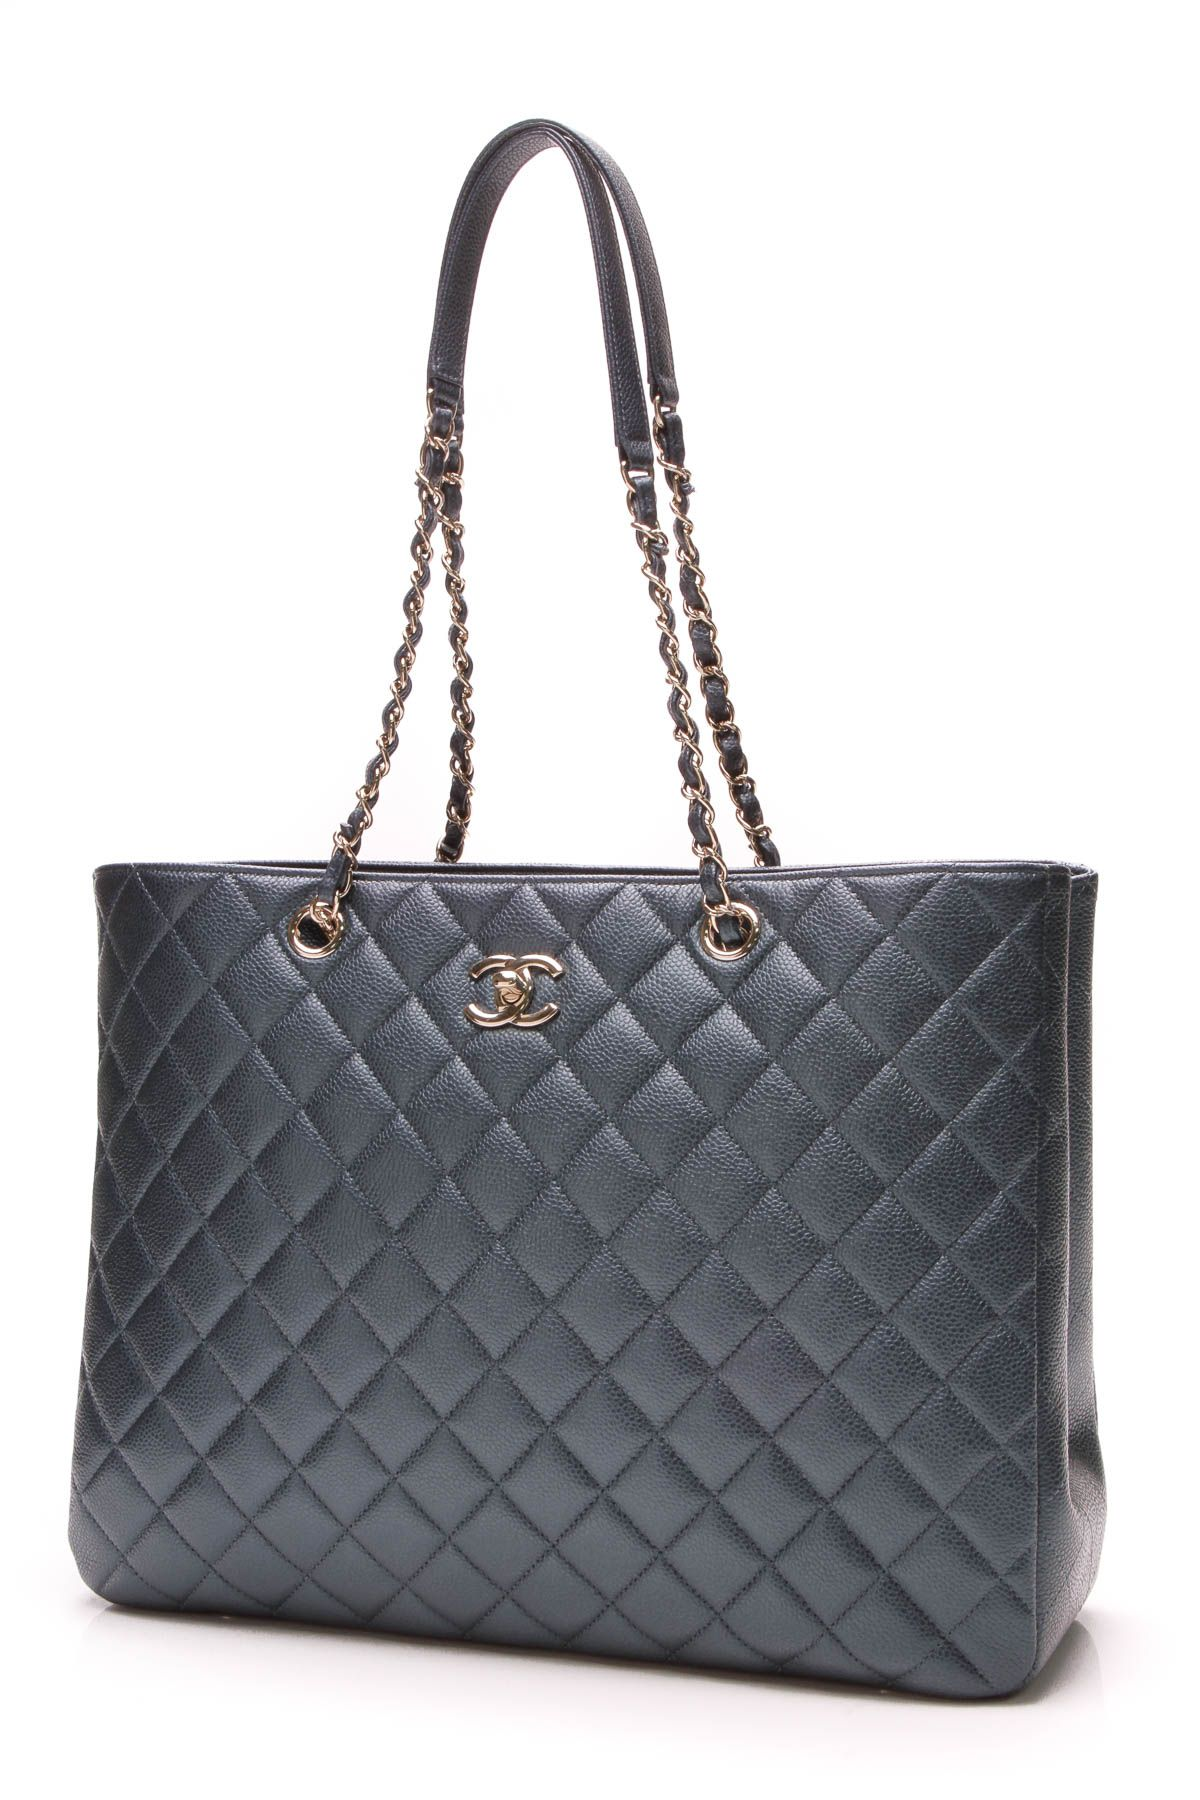 bd19f1eaca81c3 Chanel Classic Large Shopping Tote Bag - Dark Blue   Crazy for Coco ...